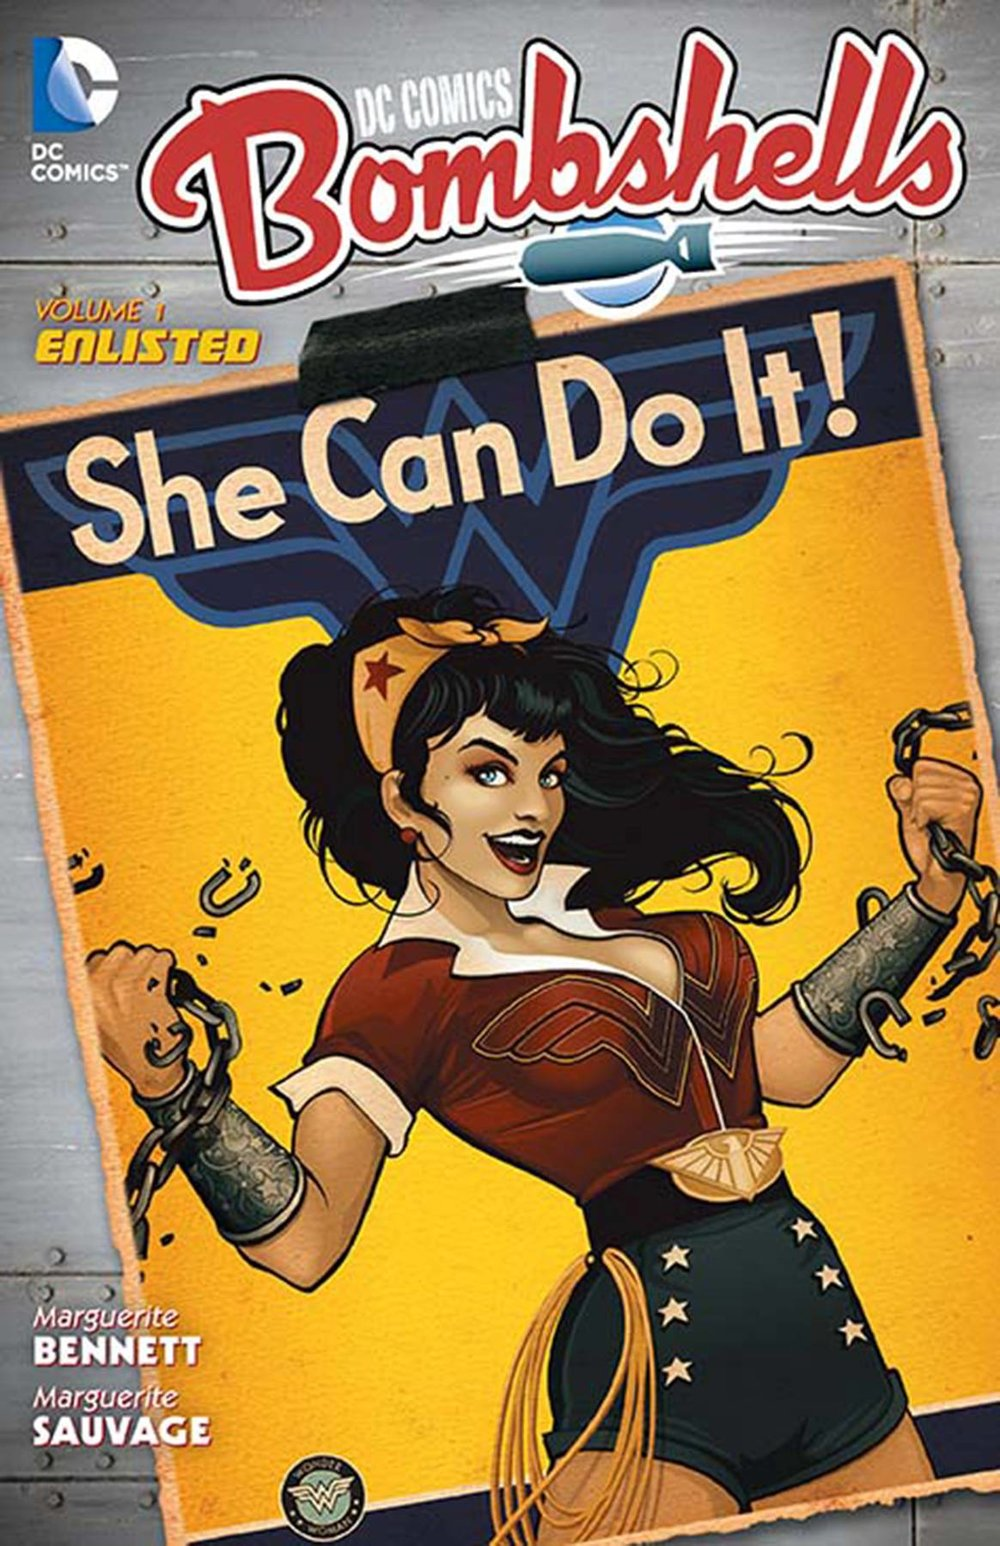 DC Comics Bombshells Vol 1  - Sarah's PickDo you like the movie A League of Their Own? Have you ever found yourself wondering